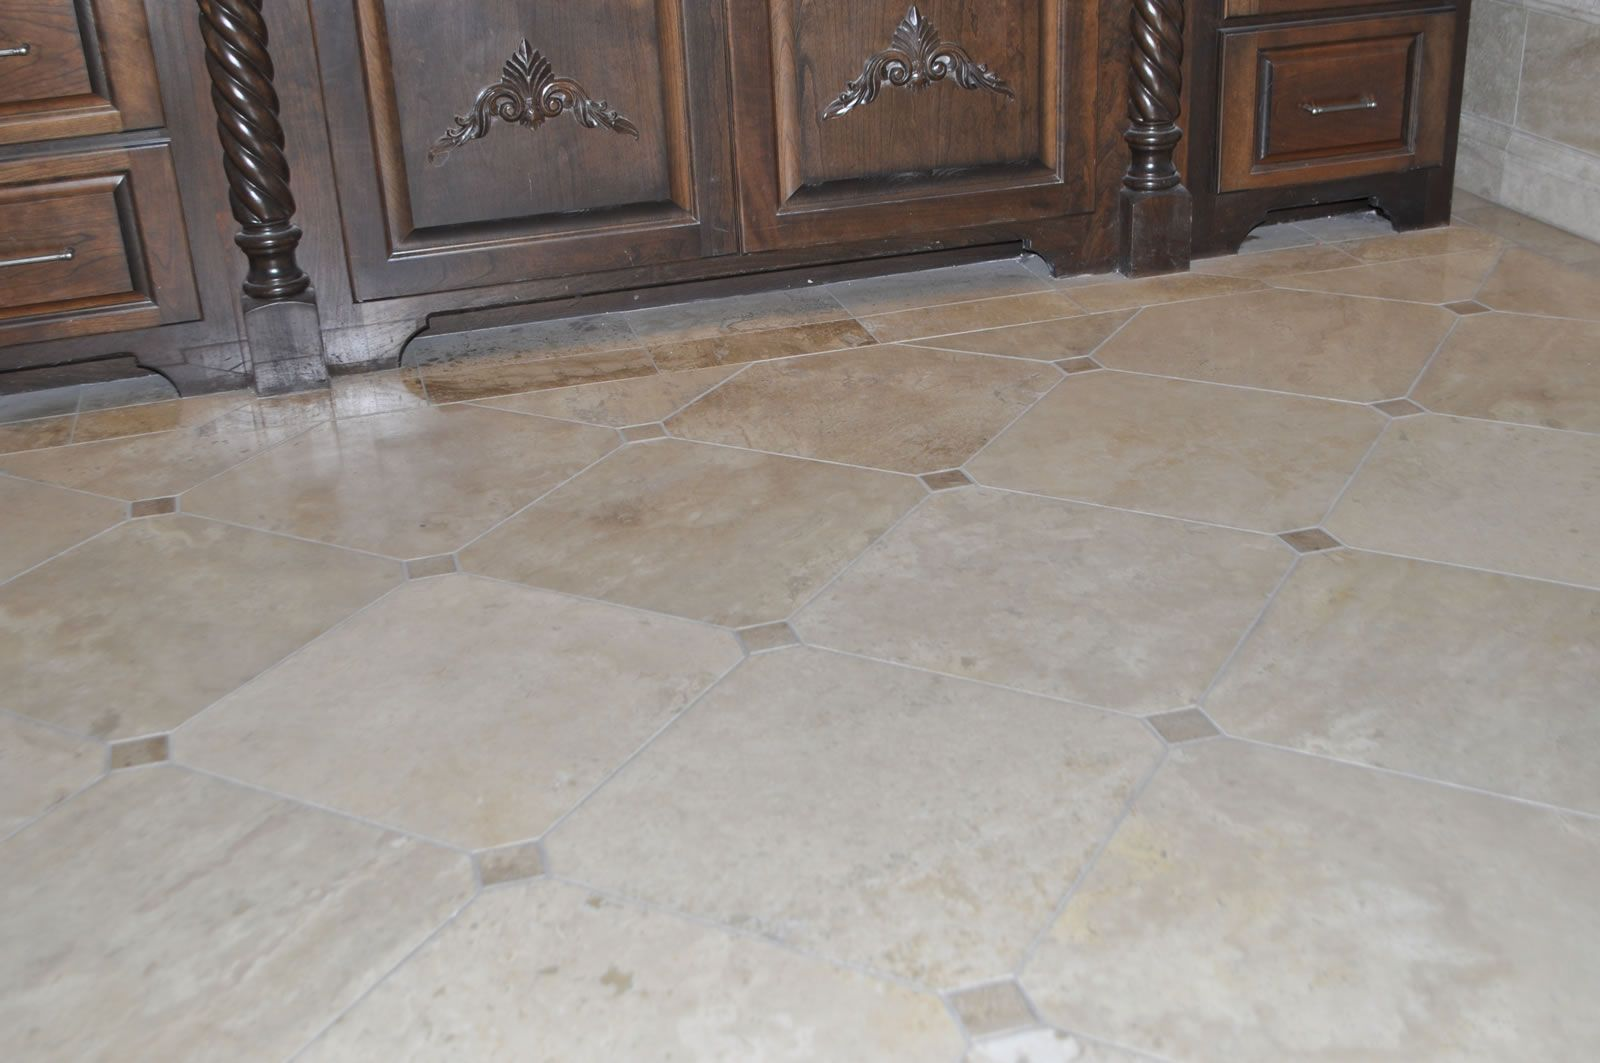 Kitchen Ceramic Tile Flooring Porcelain Tile In Living Room Ceramic Porcelain Stone Mosaic